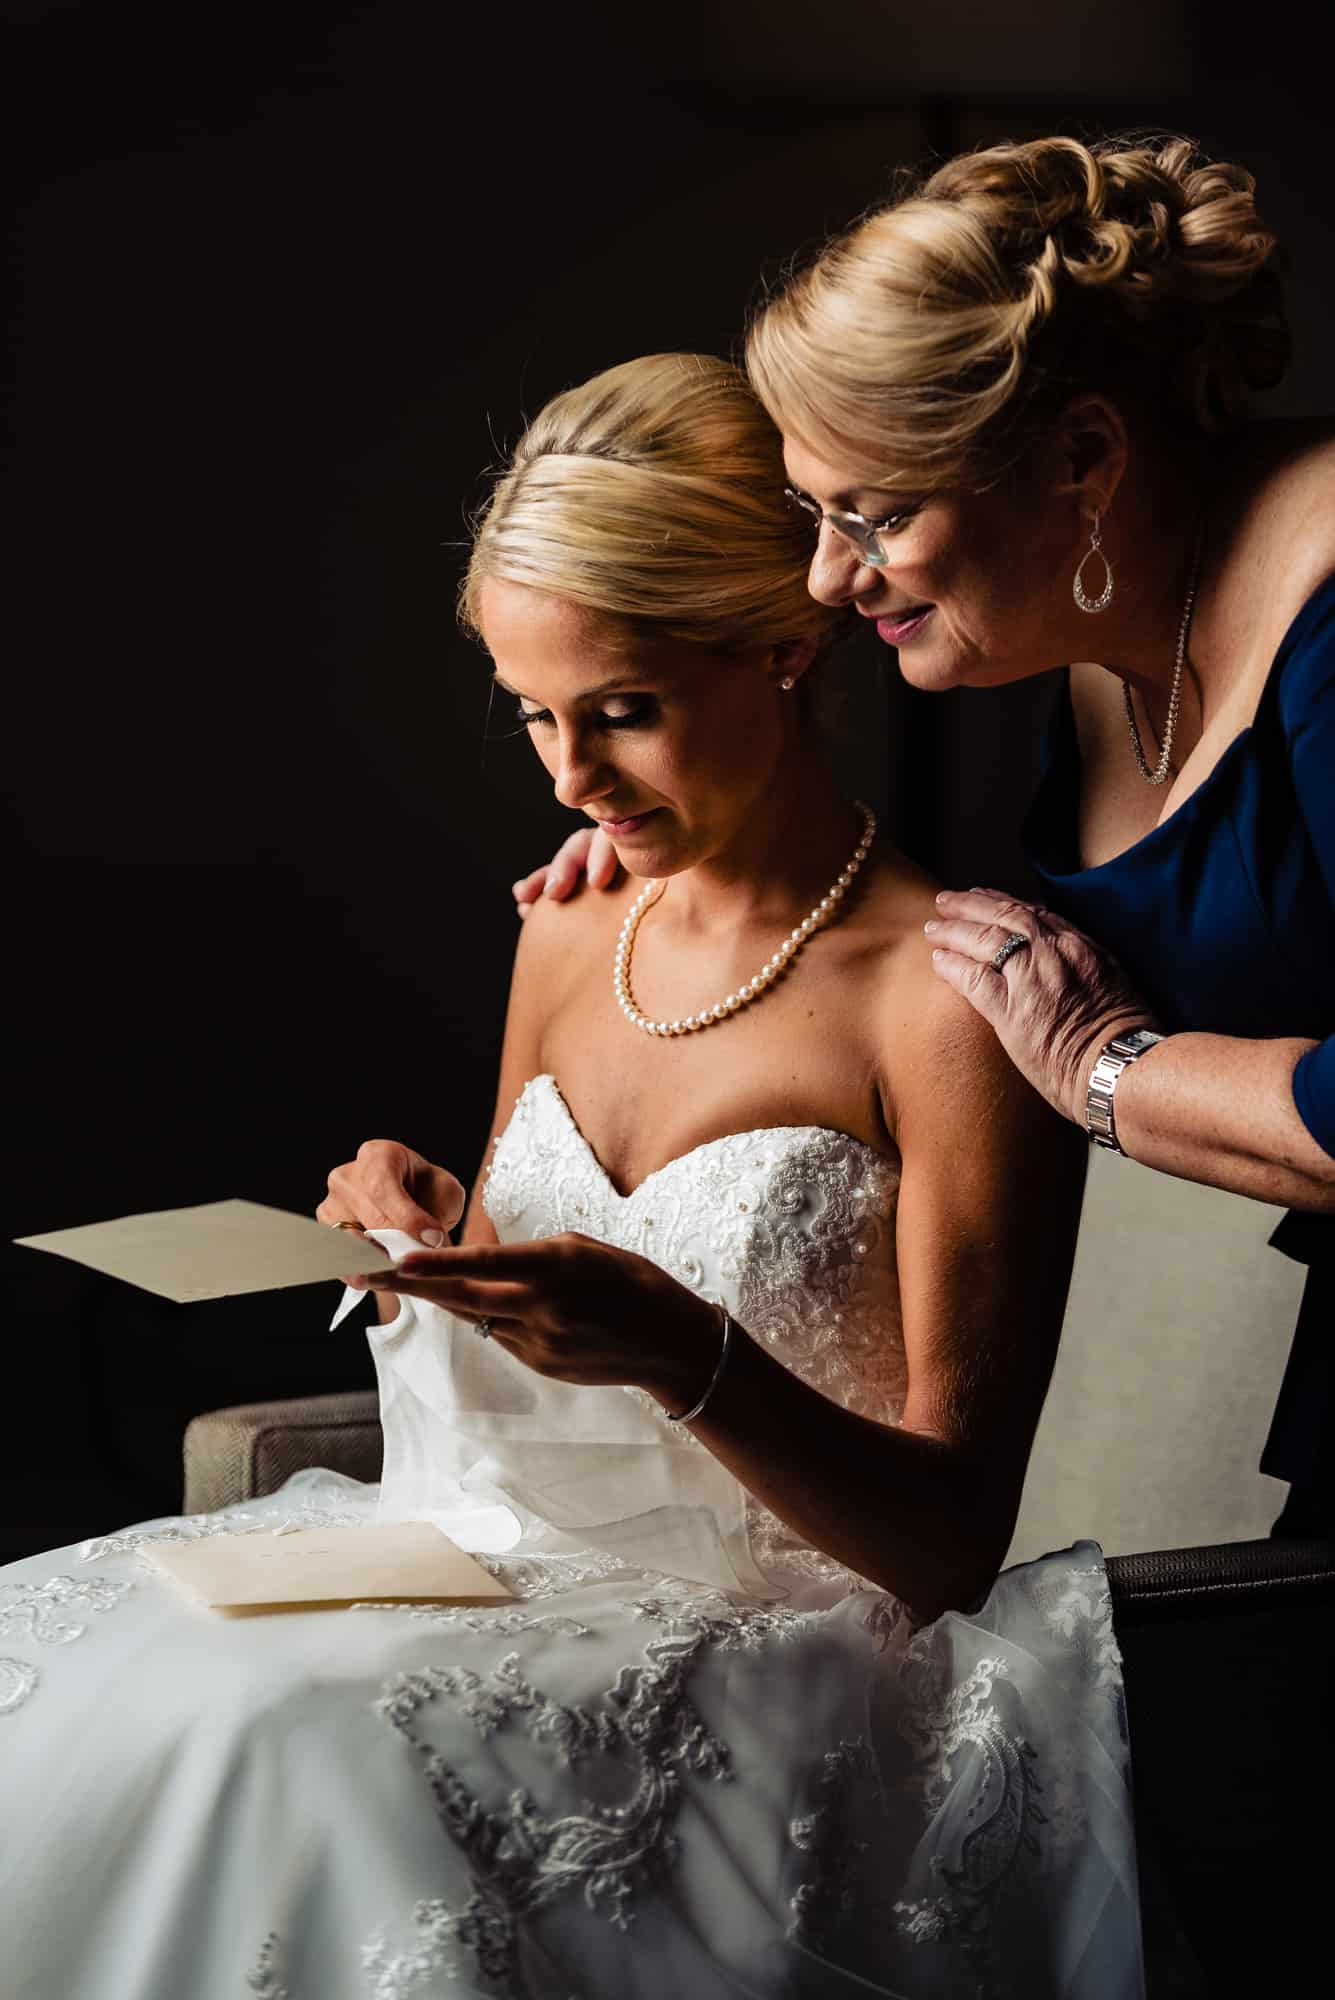 Ritz Carlton Philadelphia Wedding|mother of the bride looking over brides shoulder while she reads letter from groom